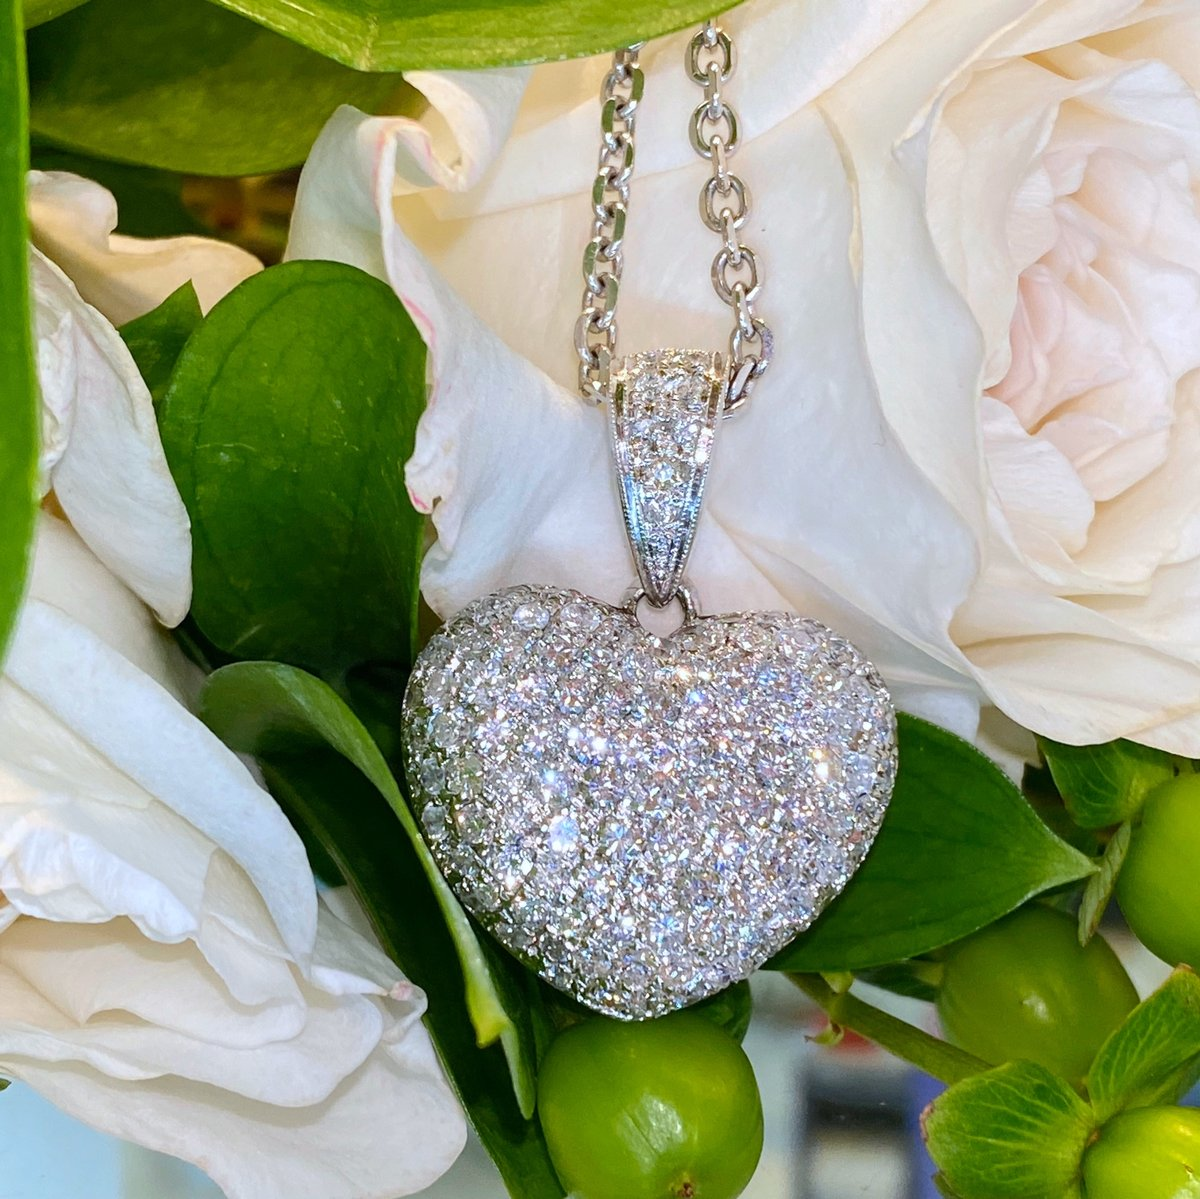 💘 Happy Valentine's Day! May your day be as full of love as this pendant is full of diamonds 💘Save 40-70% off in store or online: code LOVE40 #valentinegift #valentinesjewelry #diamondheart #heartpendant #customjeweler #luxurylifetstyle #sandimas #glendora #laverne #claremont